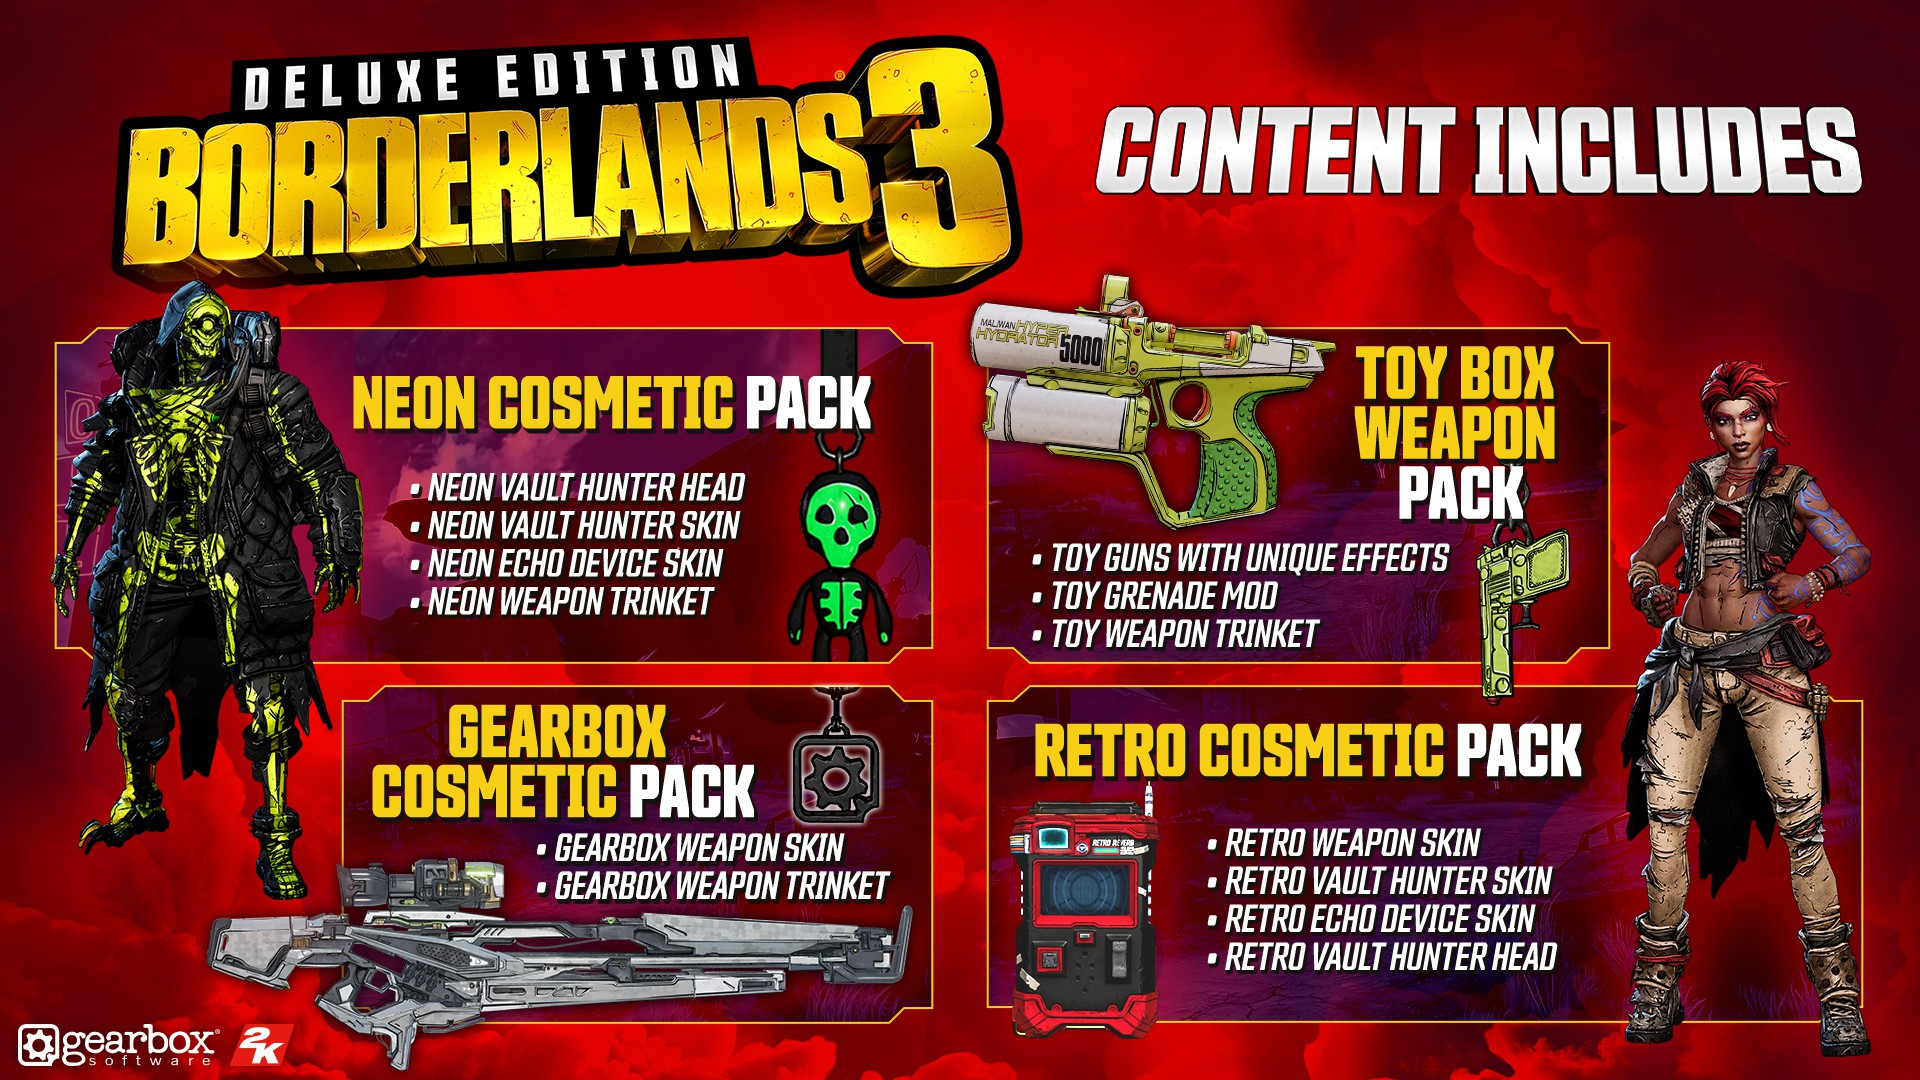 Borderlands 3 Deluxe Edition + Pre-order bonus